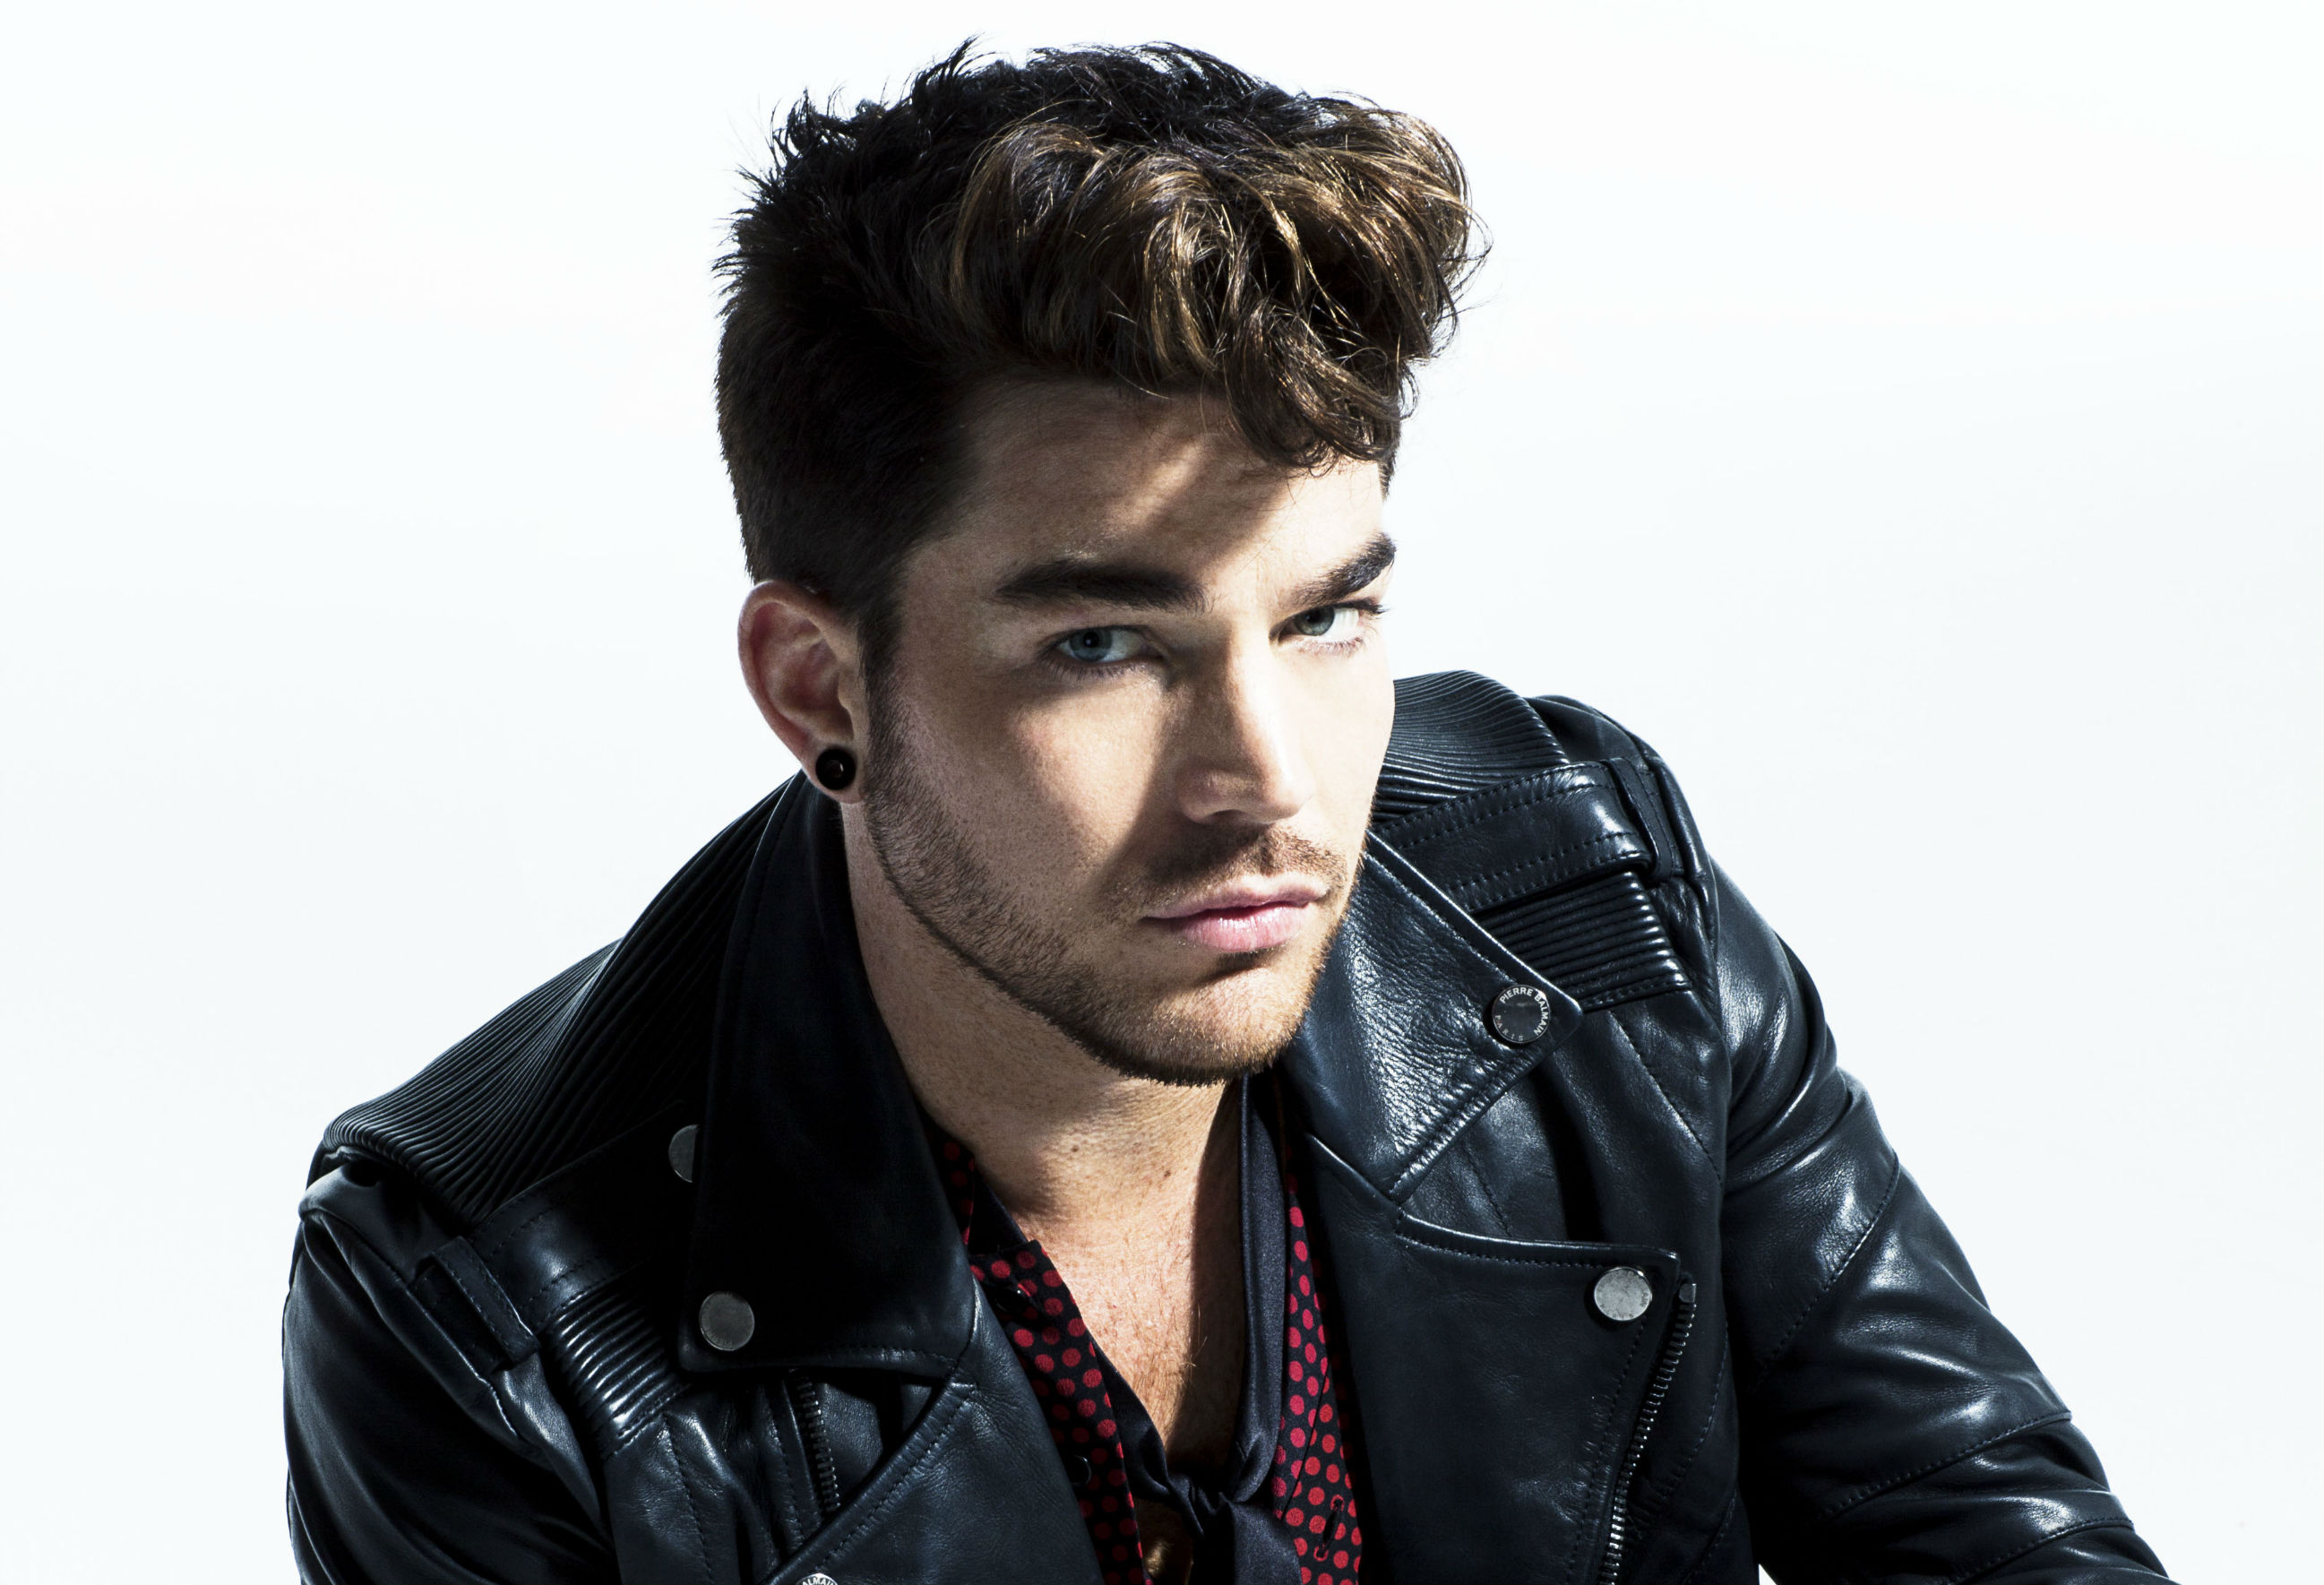 adam lambert wallpaper background 11